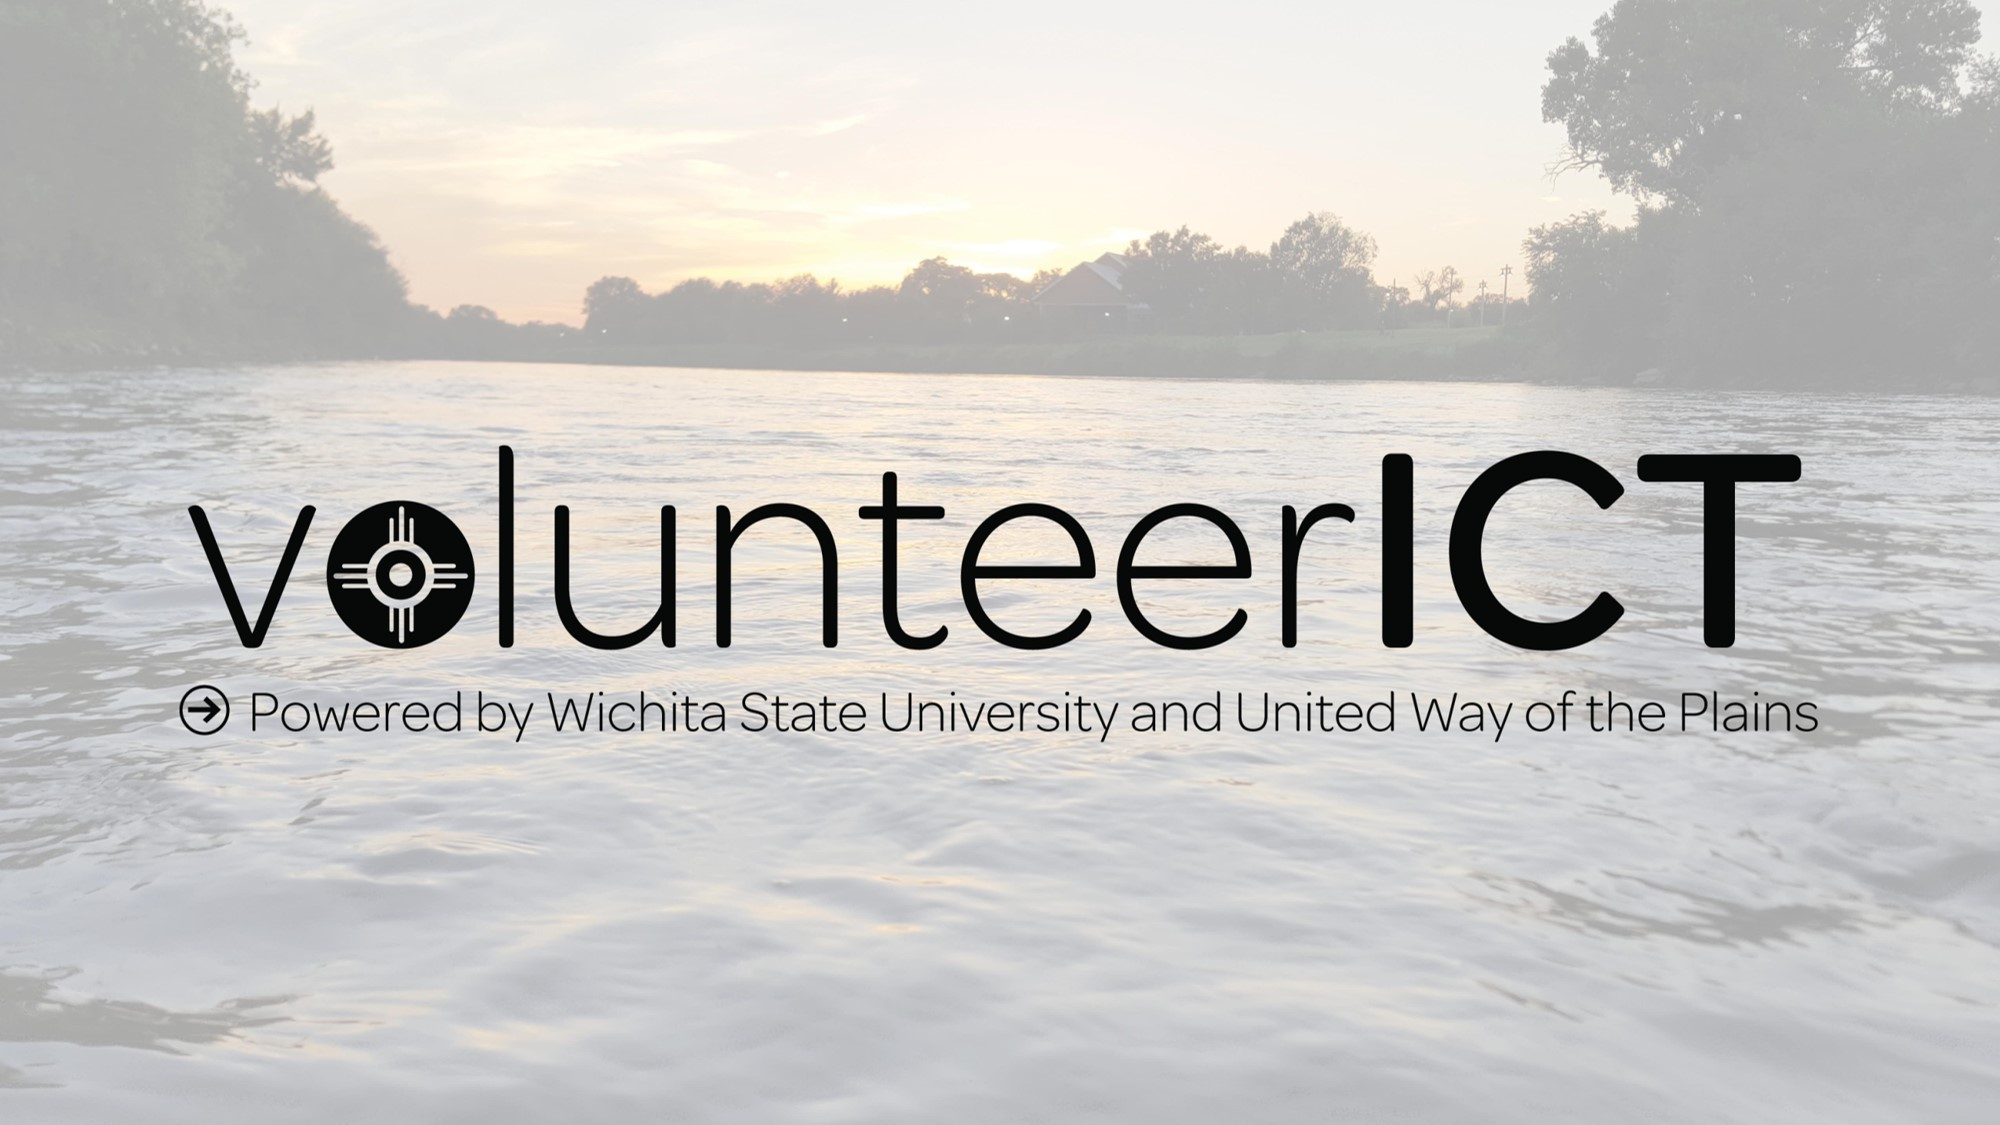 volunteerICT is Wichita State's campus-focused partnership with the United Way of the Plains and connects Wichita State students with volunteer opportunities in Wichita.